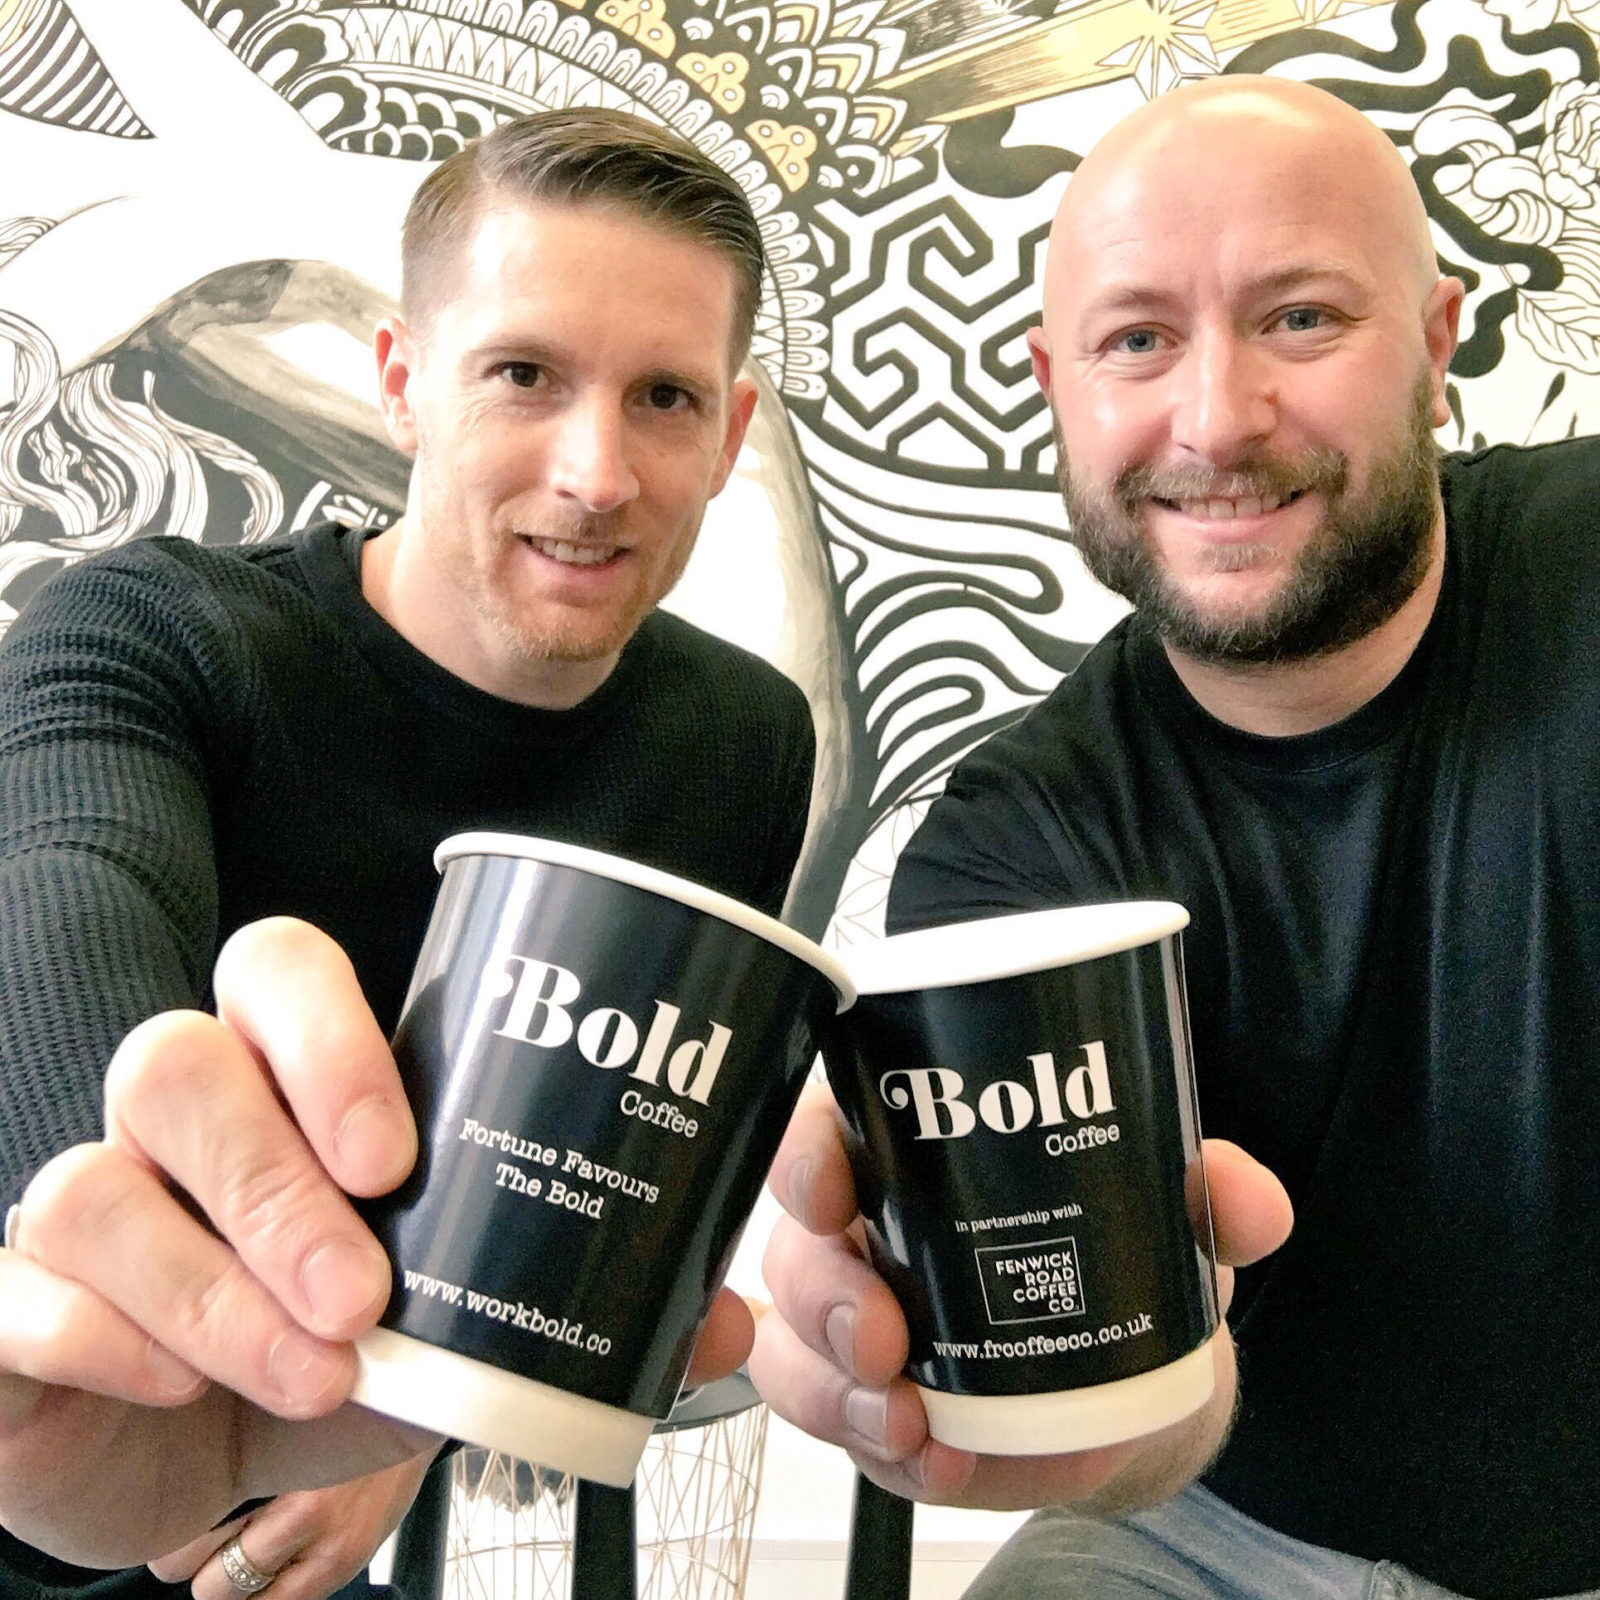 Cheers to Bold Coffee